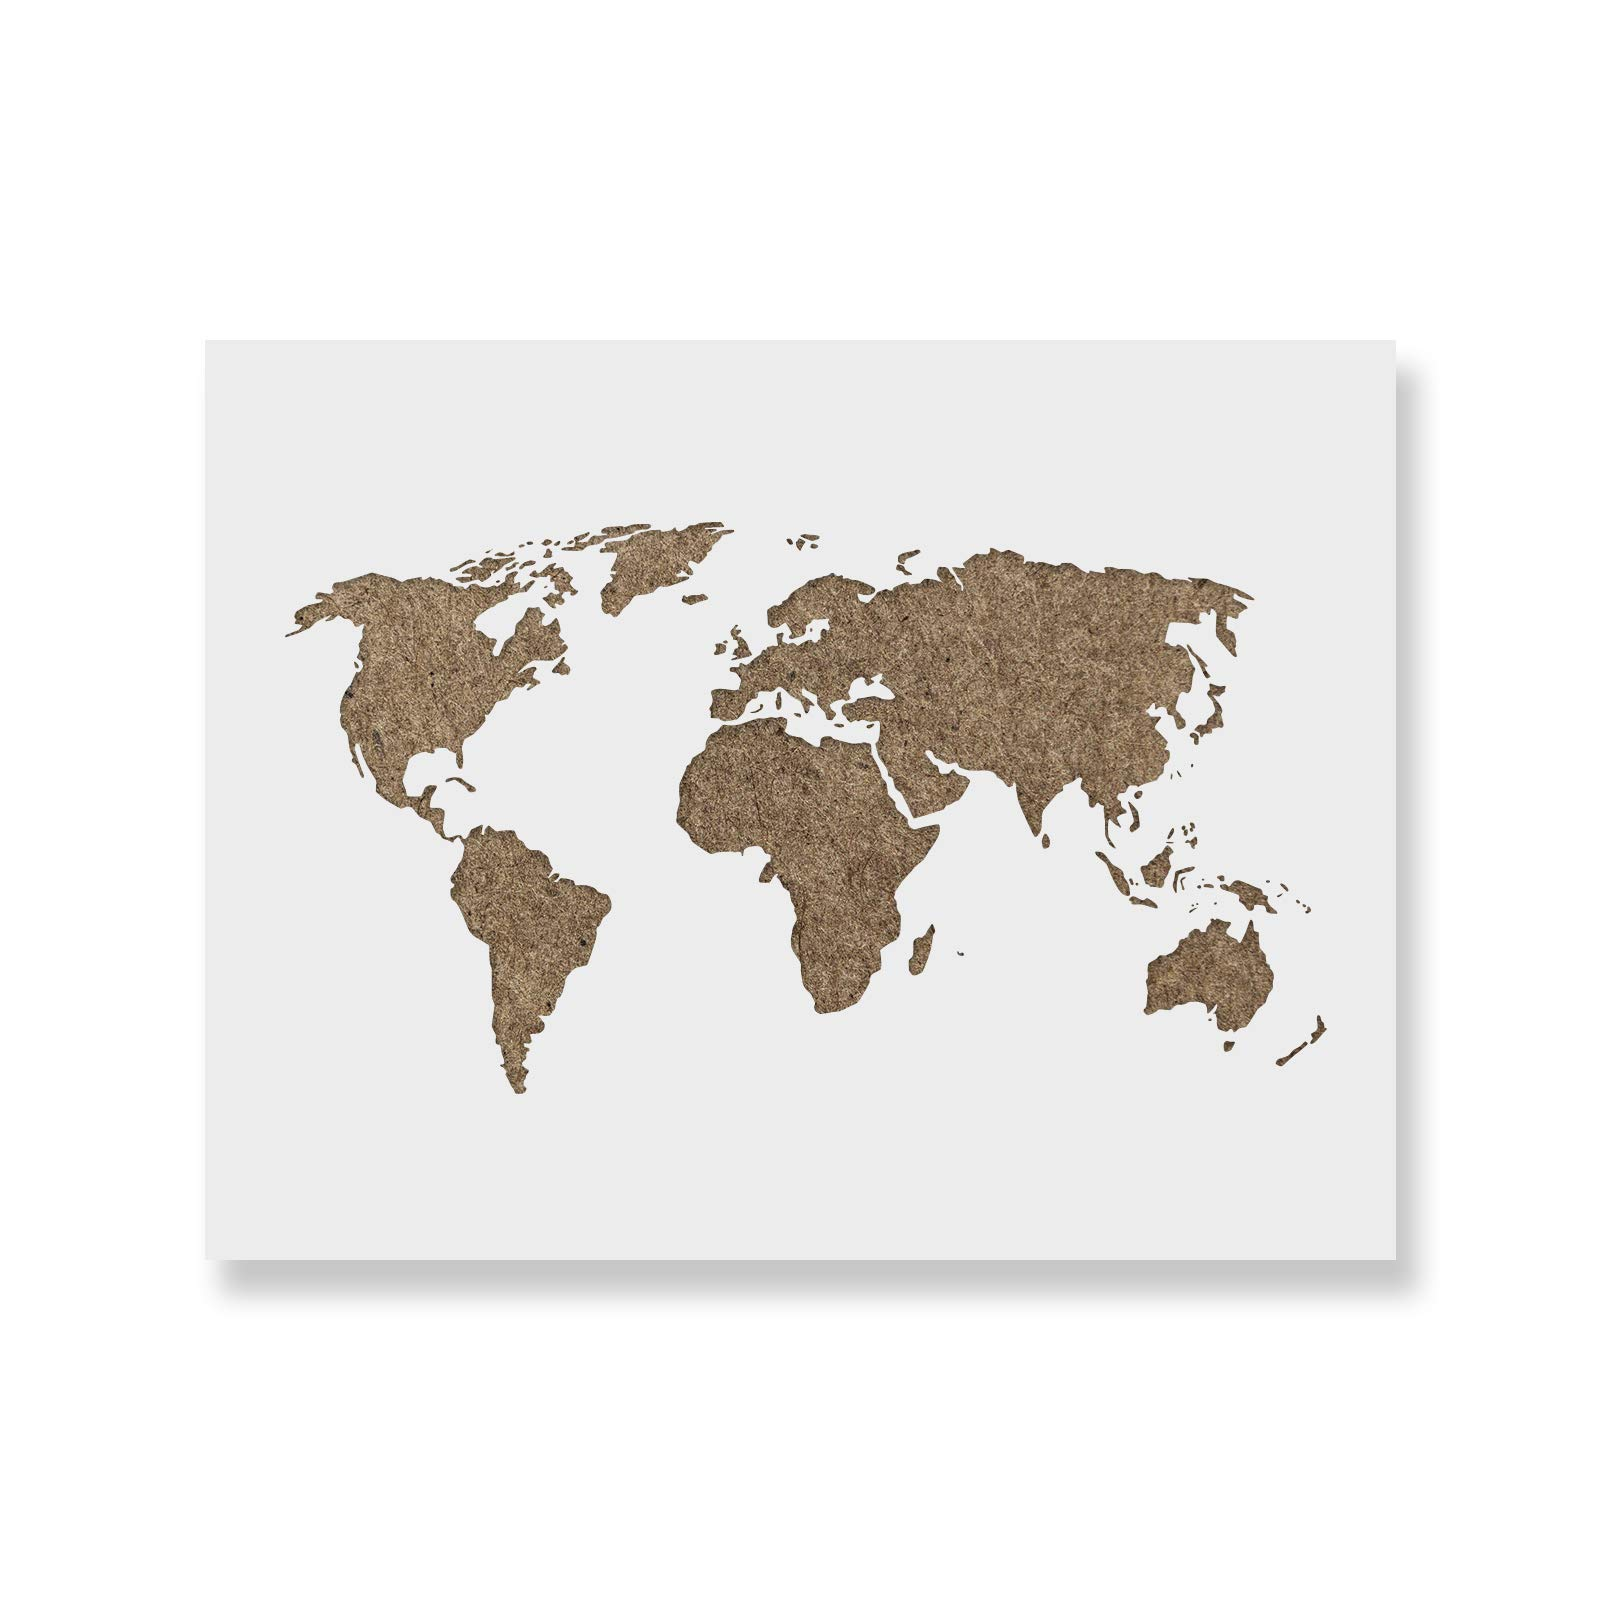 World Map Stencil Template for Walls and Crafts - Reusable Stencils for Painting in Small & Large Sizes by Stencil Revolution